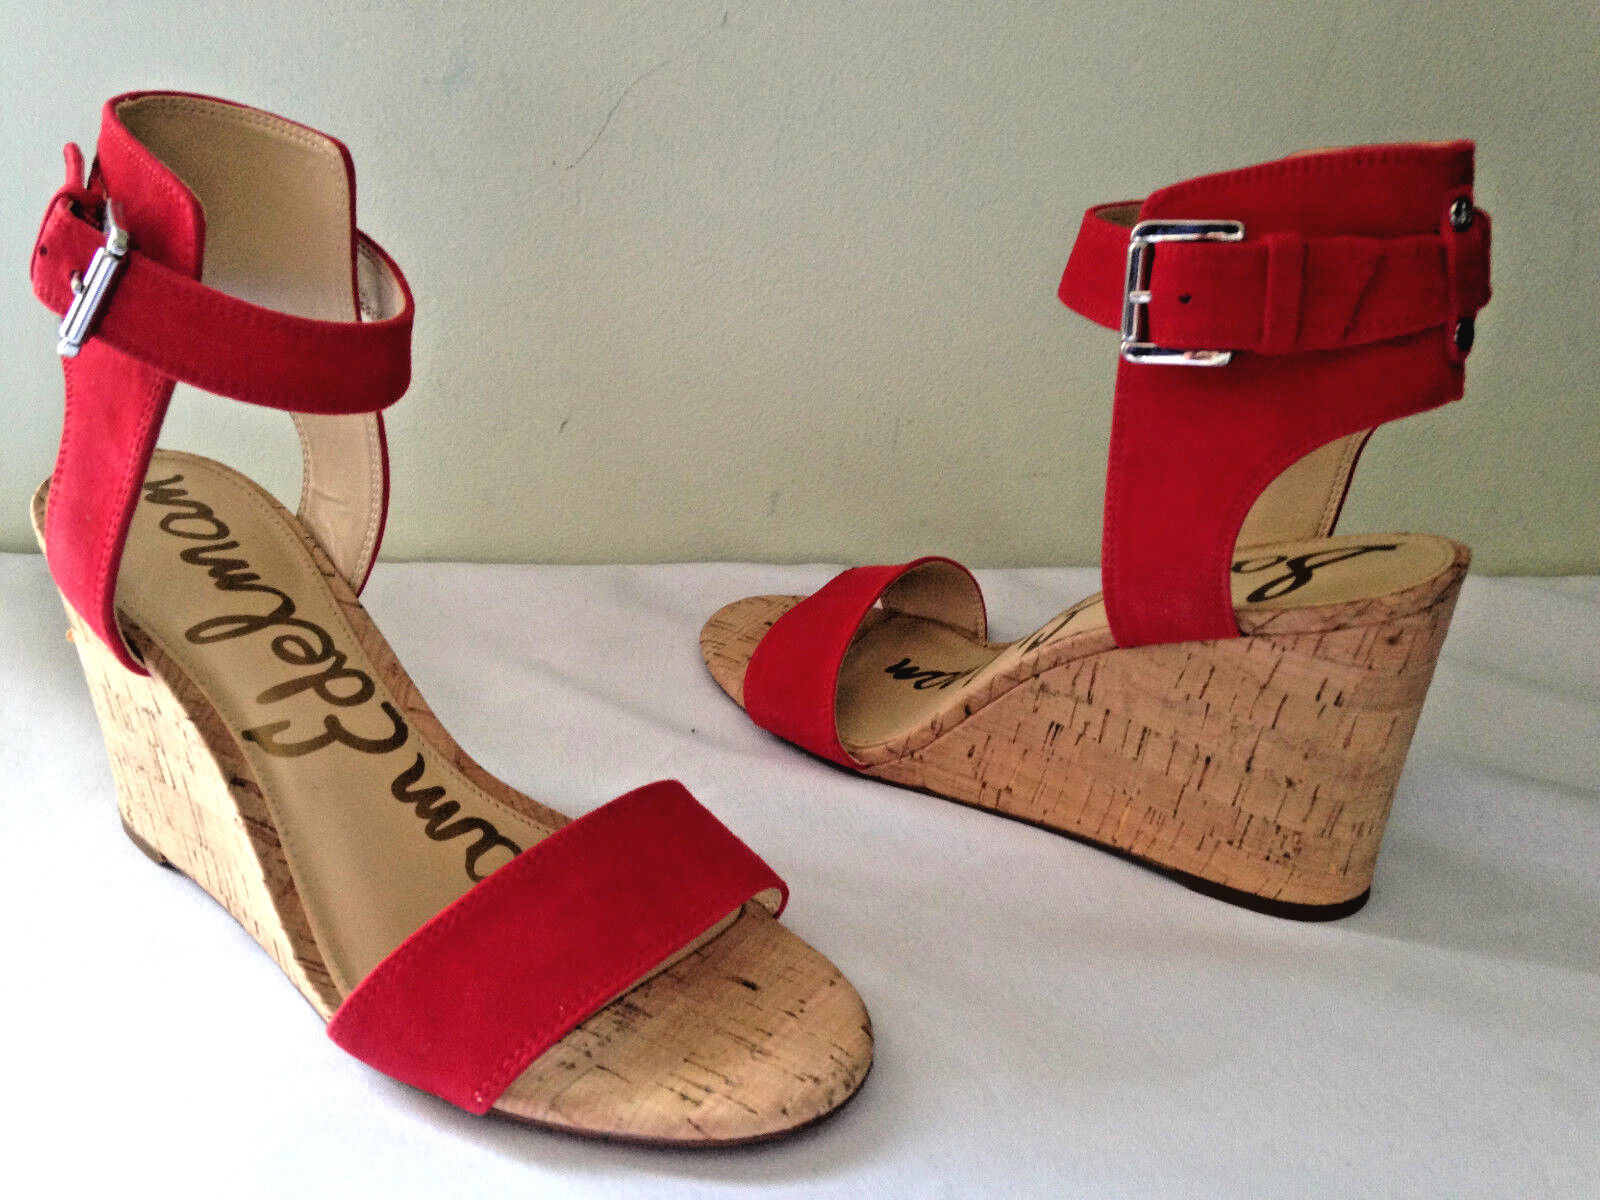 NEW Sam Edelman Red Suede Leather WILLOW Wedge Wedge Wedge Open Toe Sandals 8.5 M  140 de8f03